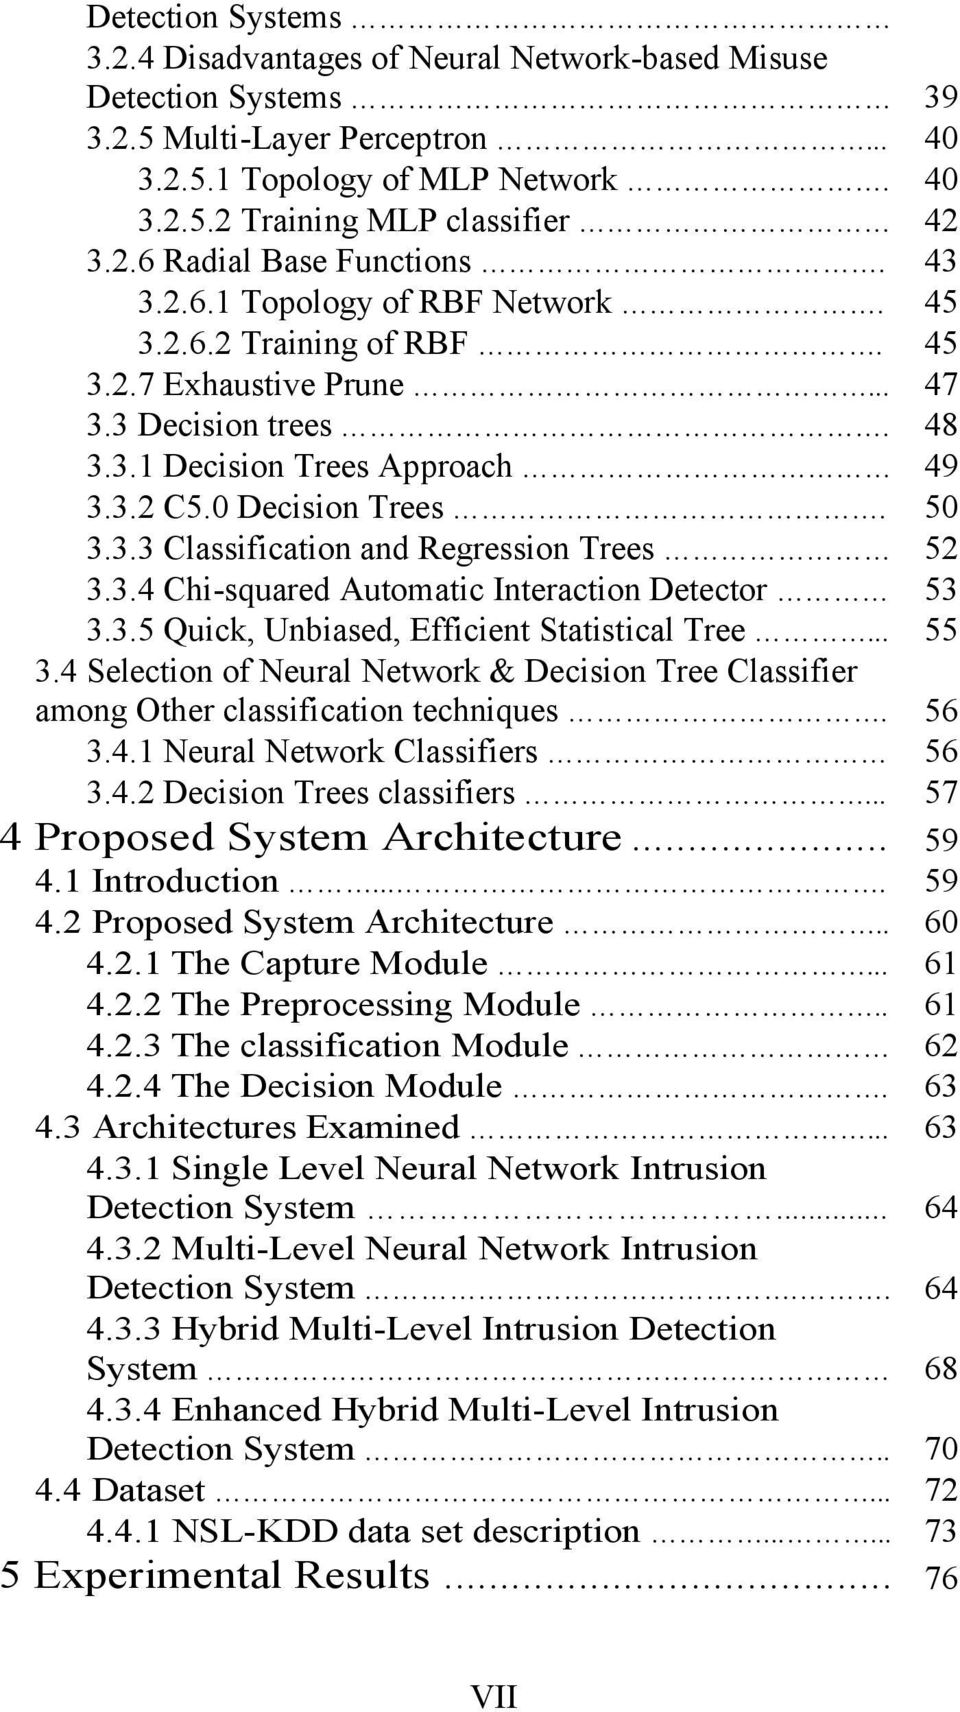 3.4 Chi-squared Automatic Interaction Detector 3.3.5 Quick, Unbiased, Efficient Statistical Tree... 3.4 Selection of Neural Network & Decision Tree Classifier among Other classification techniques. 3.4.1 Neural Network Classifiers 3.